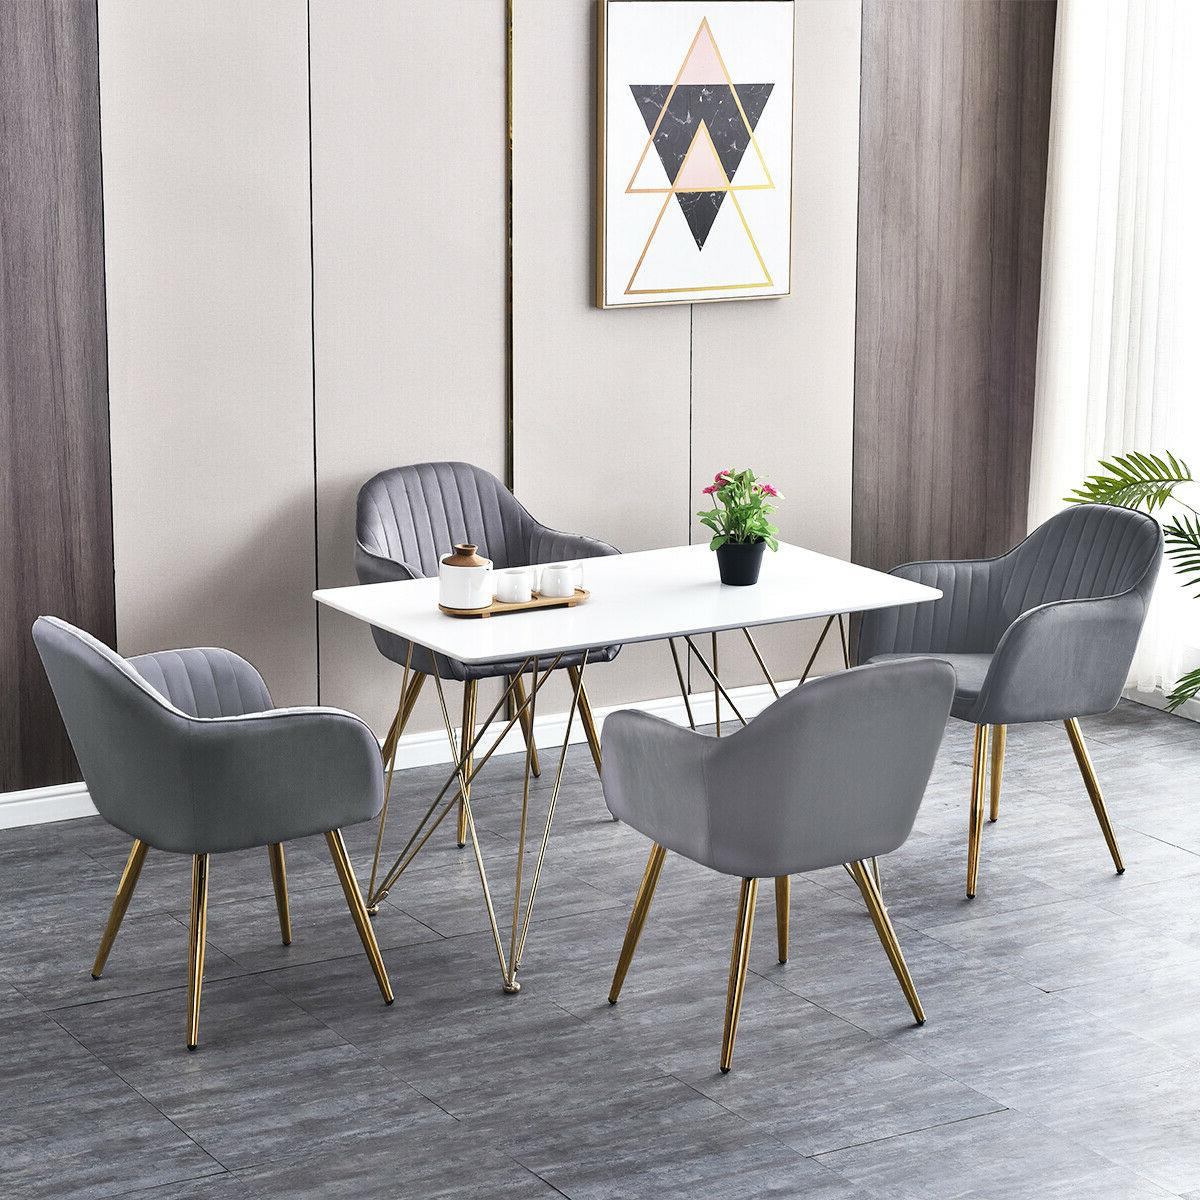 Picture of: Ansley Hosho Contemporary 5 Pieces Black Wood Dining Table And Chairs Set Of 4 Grey Velvet Chairs Upholstered Kitchen Chairs With Retro Table Rectangular Dining Room Set For Small Space Home Kitchen Furniture